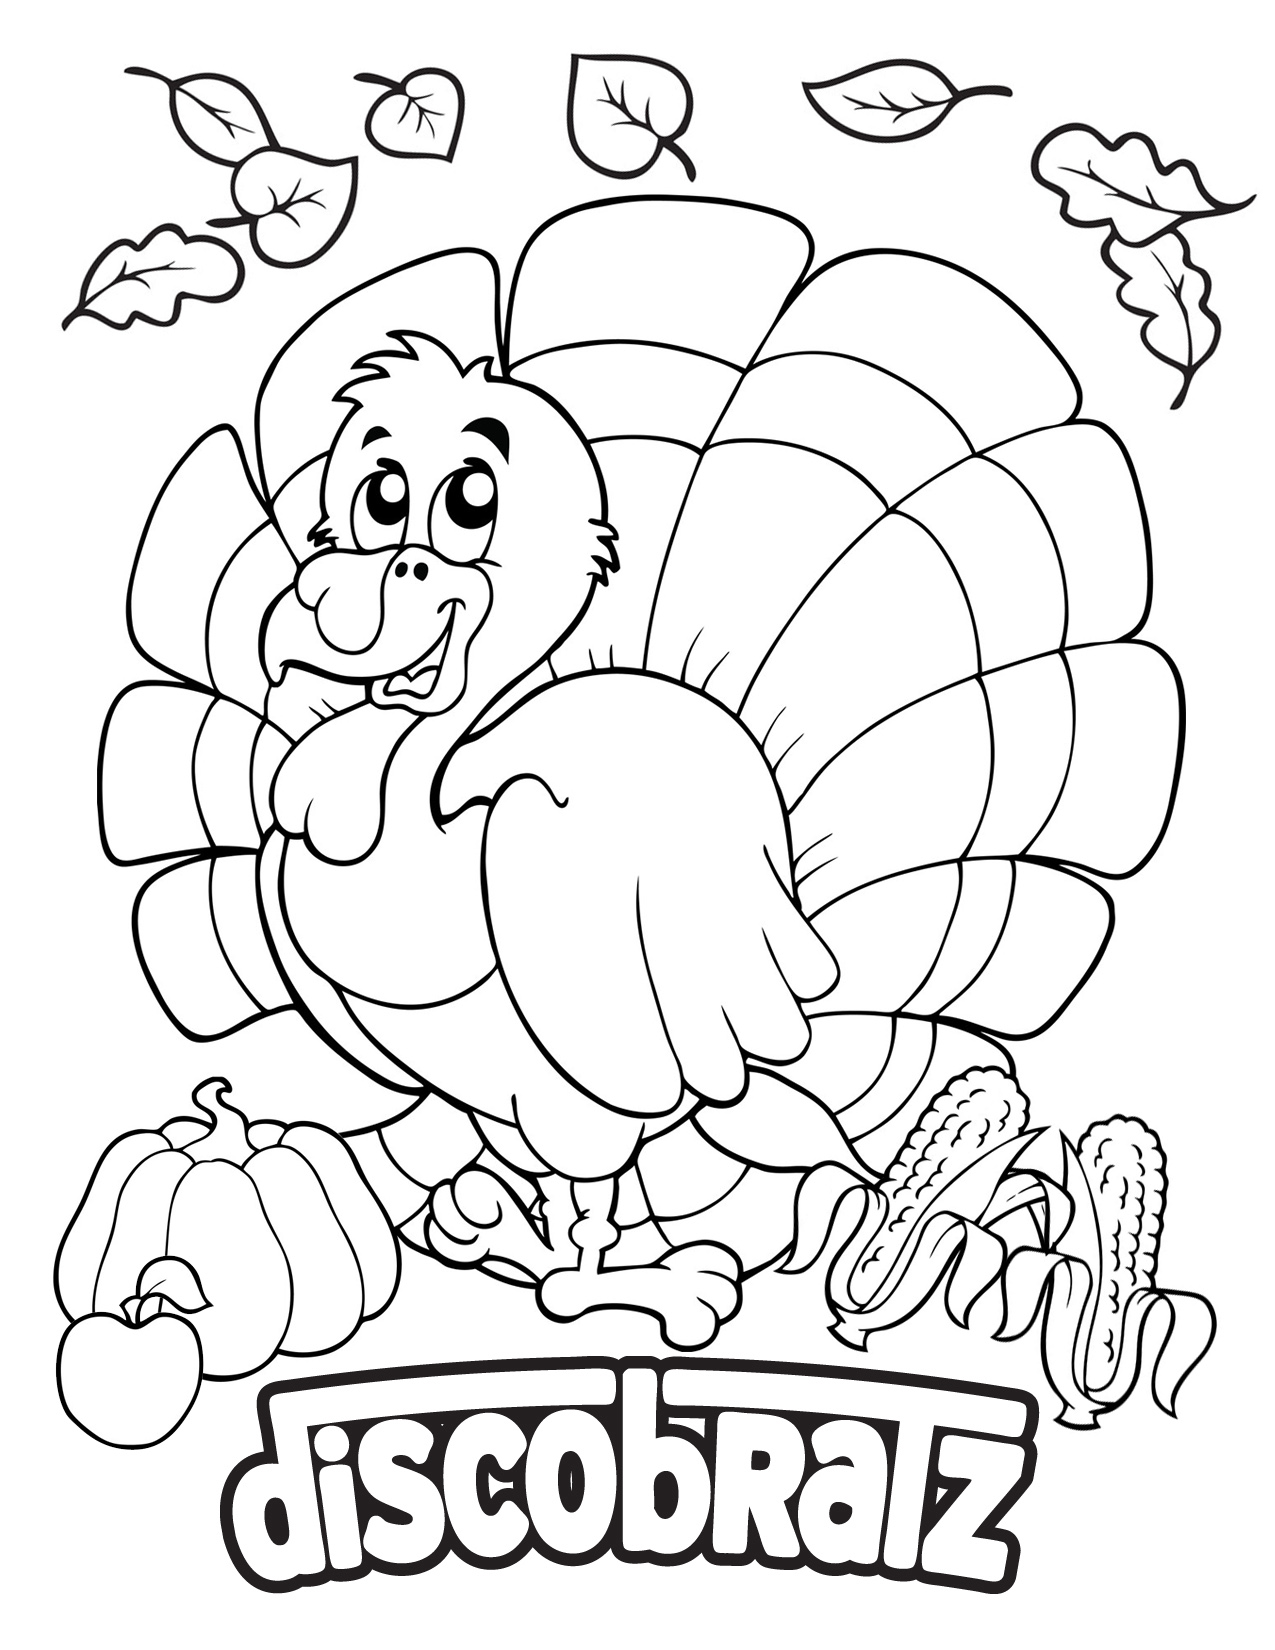 Gobble Gobble! Rejoice in Thanksgiving, with the